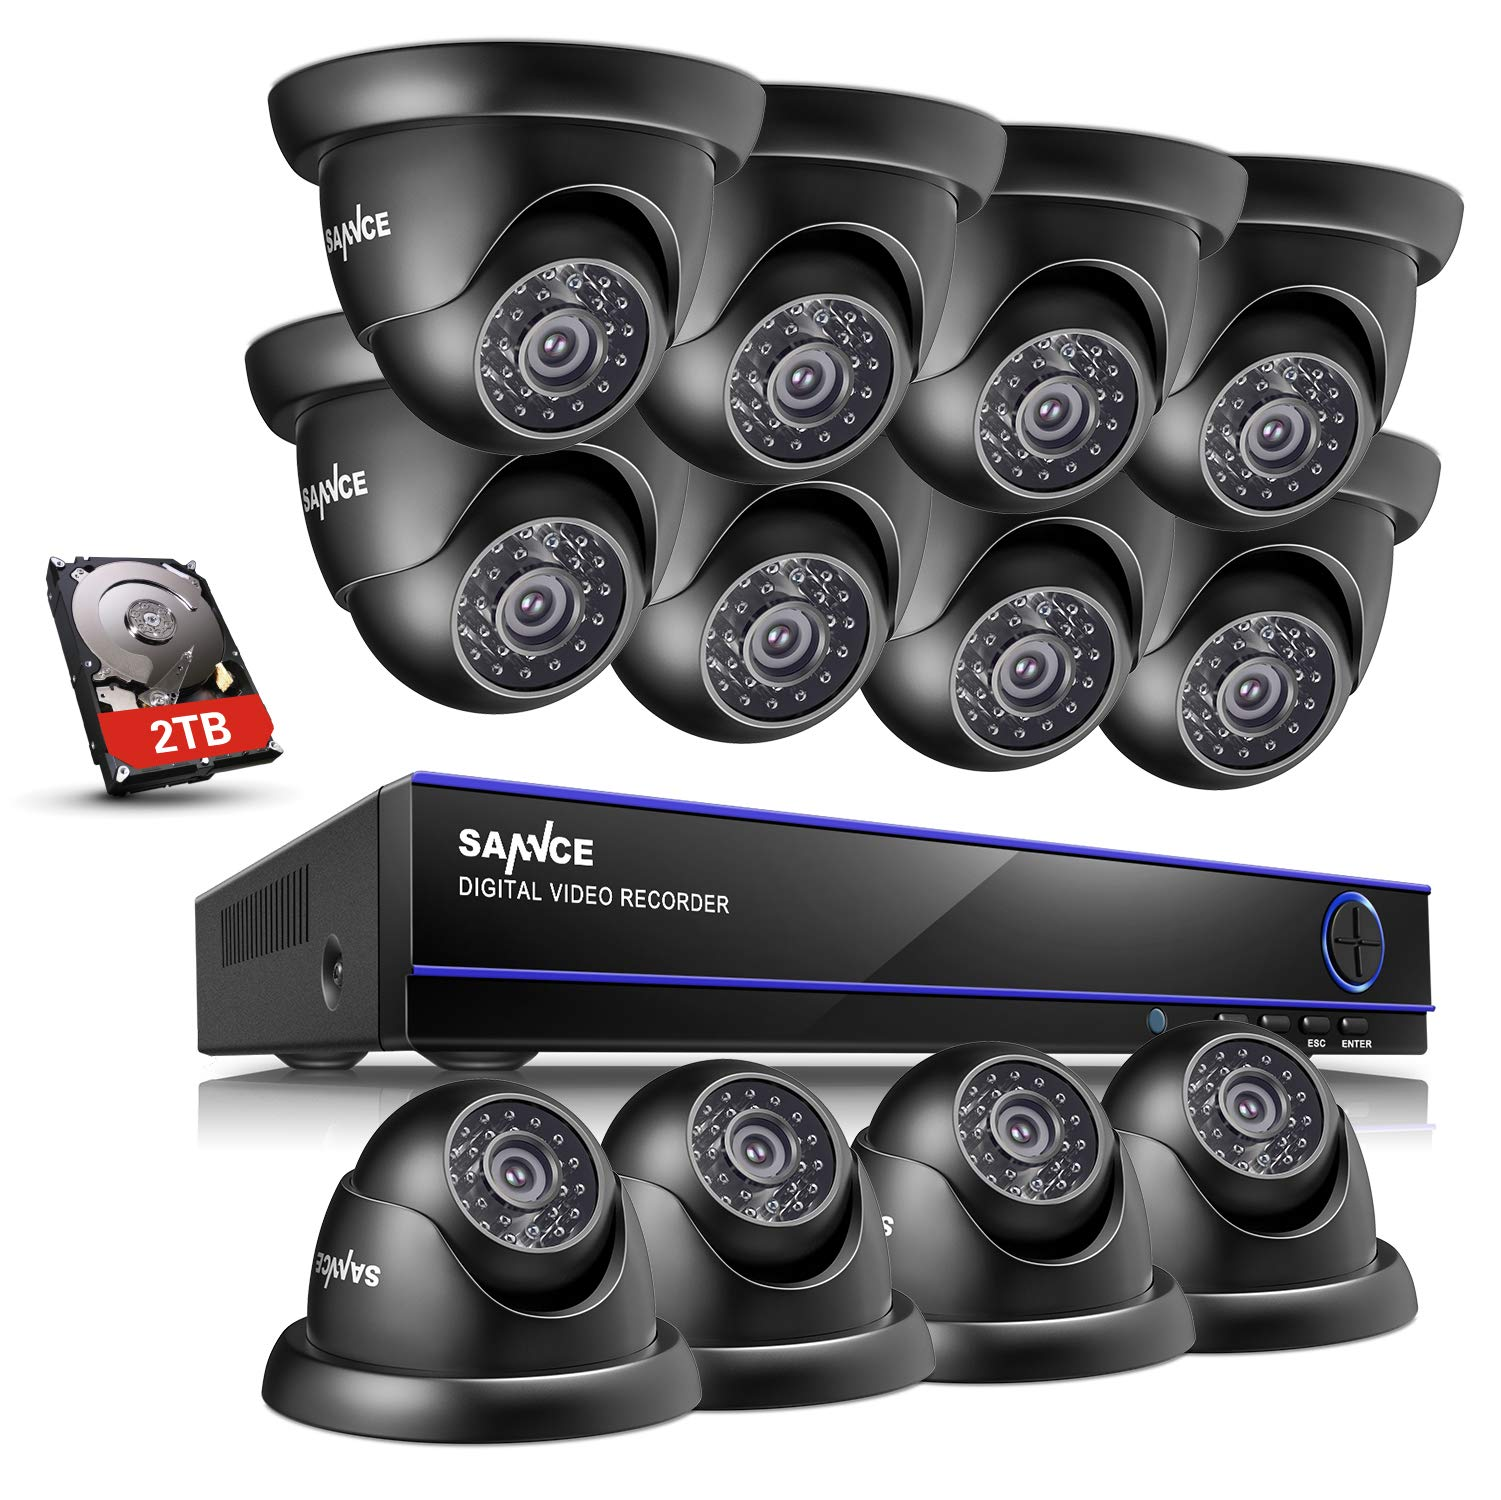 SANNCE 2TB HDD 16-Channel 1080N DVR Video Surveillance System W/ 12 1080P Hi-Resolution Weatherproof Color CCTV Camera…